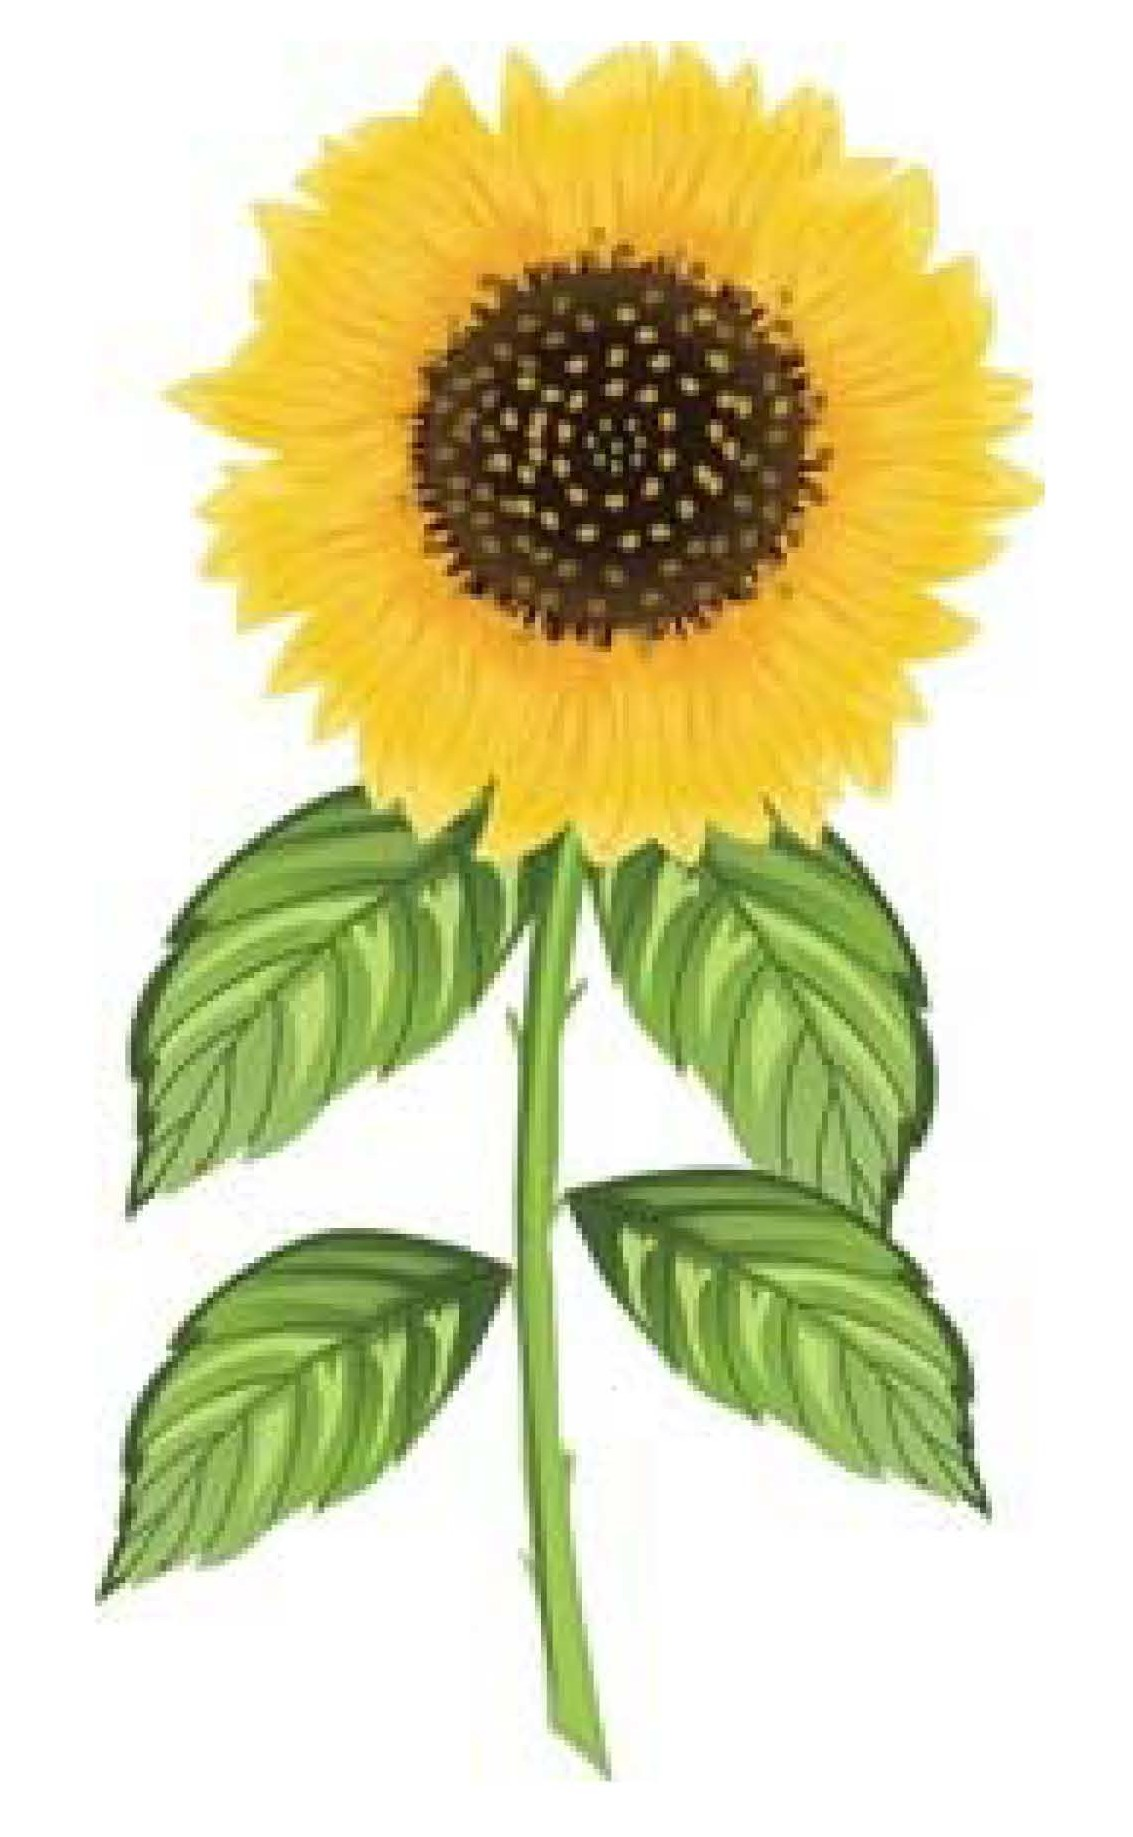 Sunflower clipart tall sunflower. Grow sunflowers in hawaii